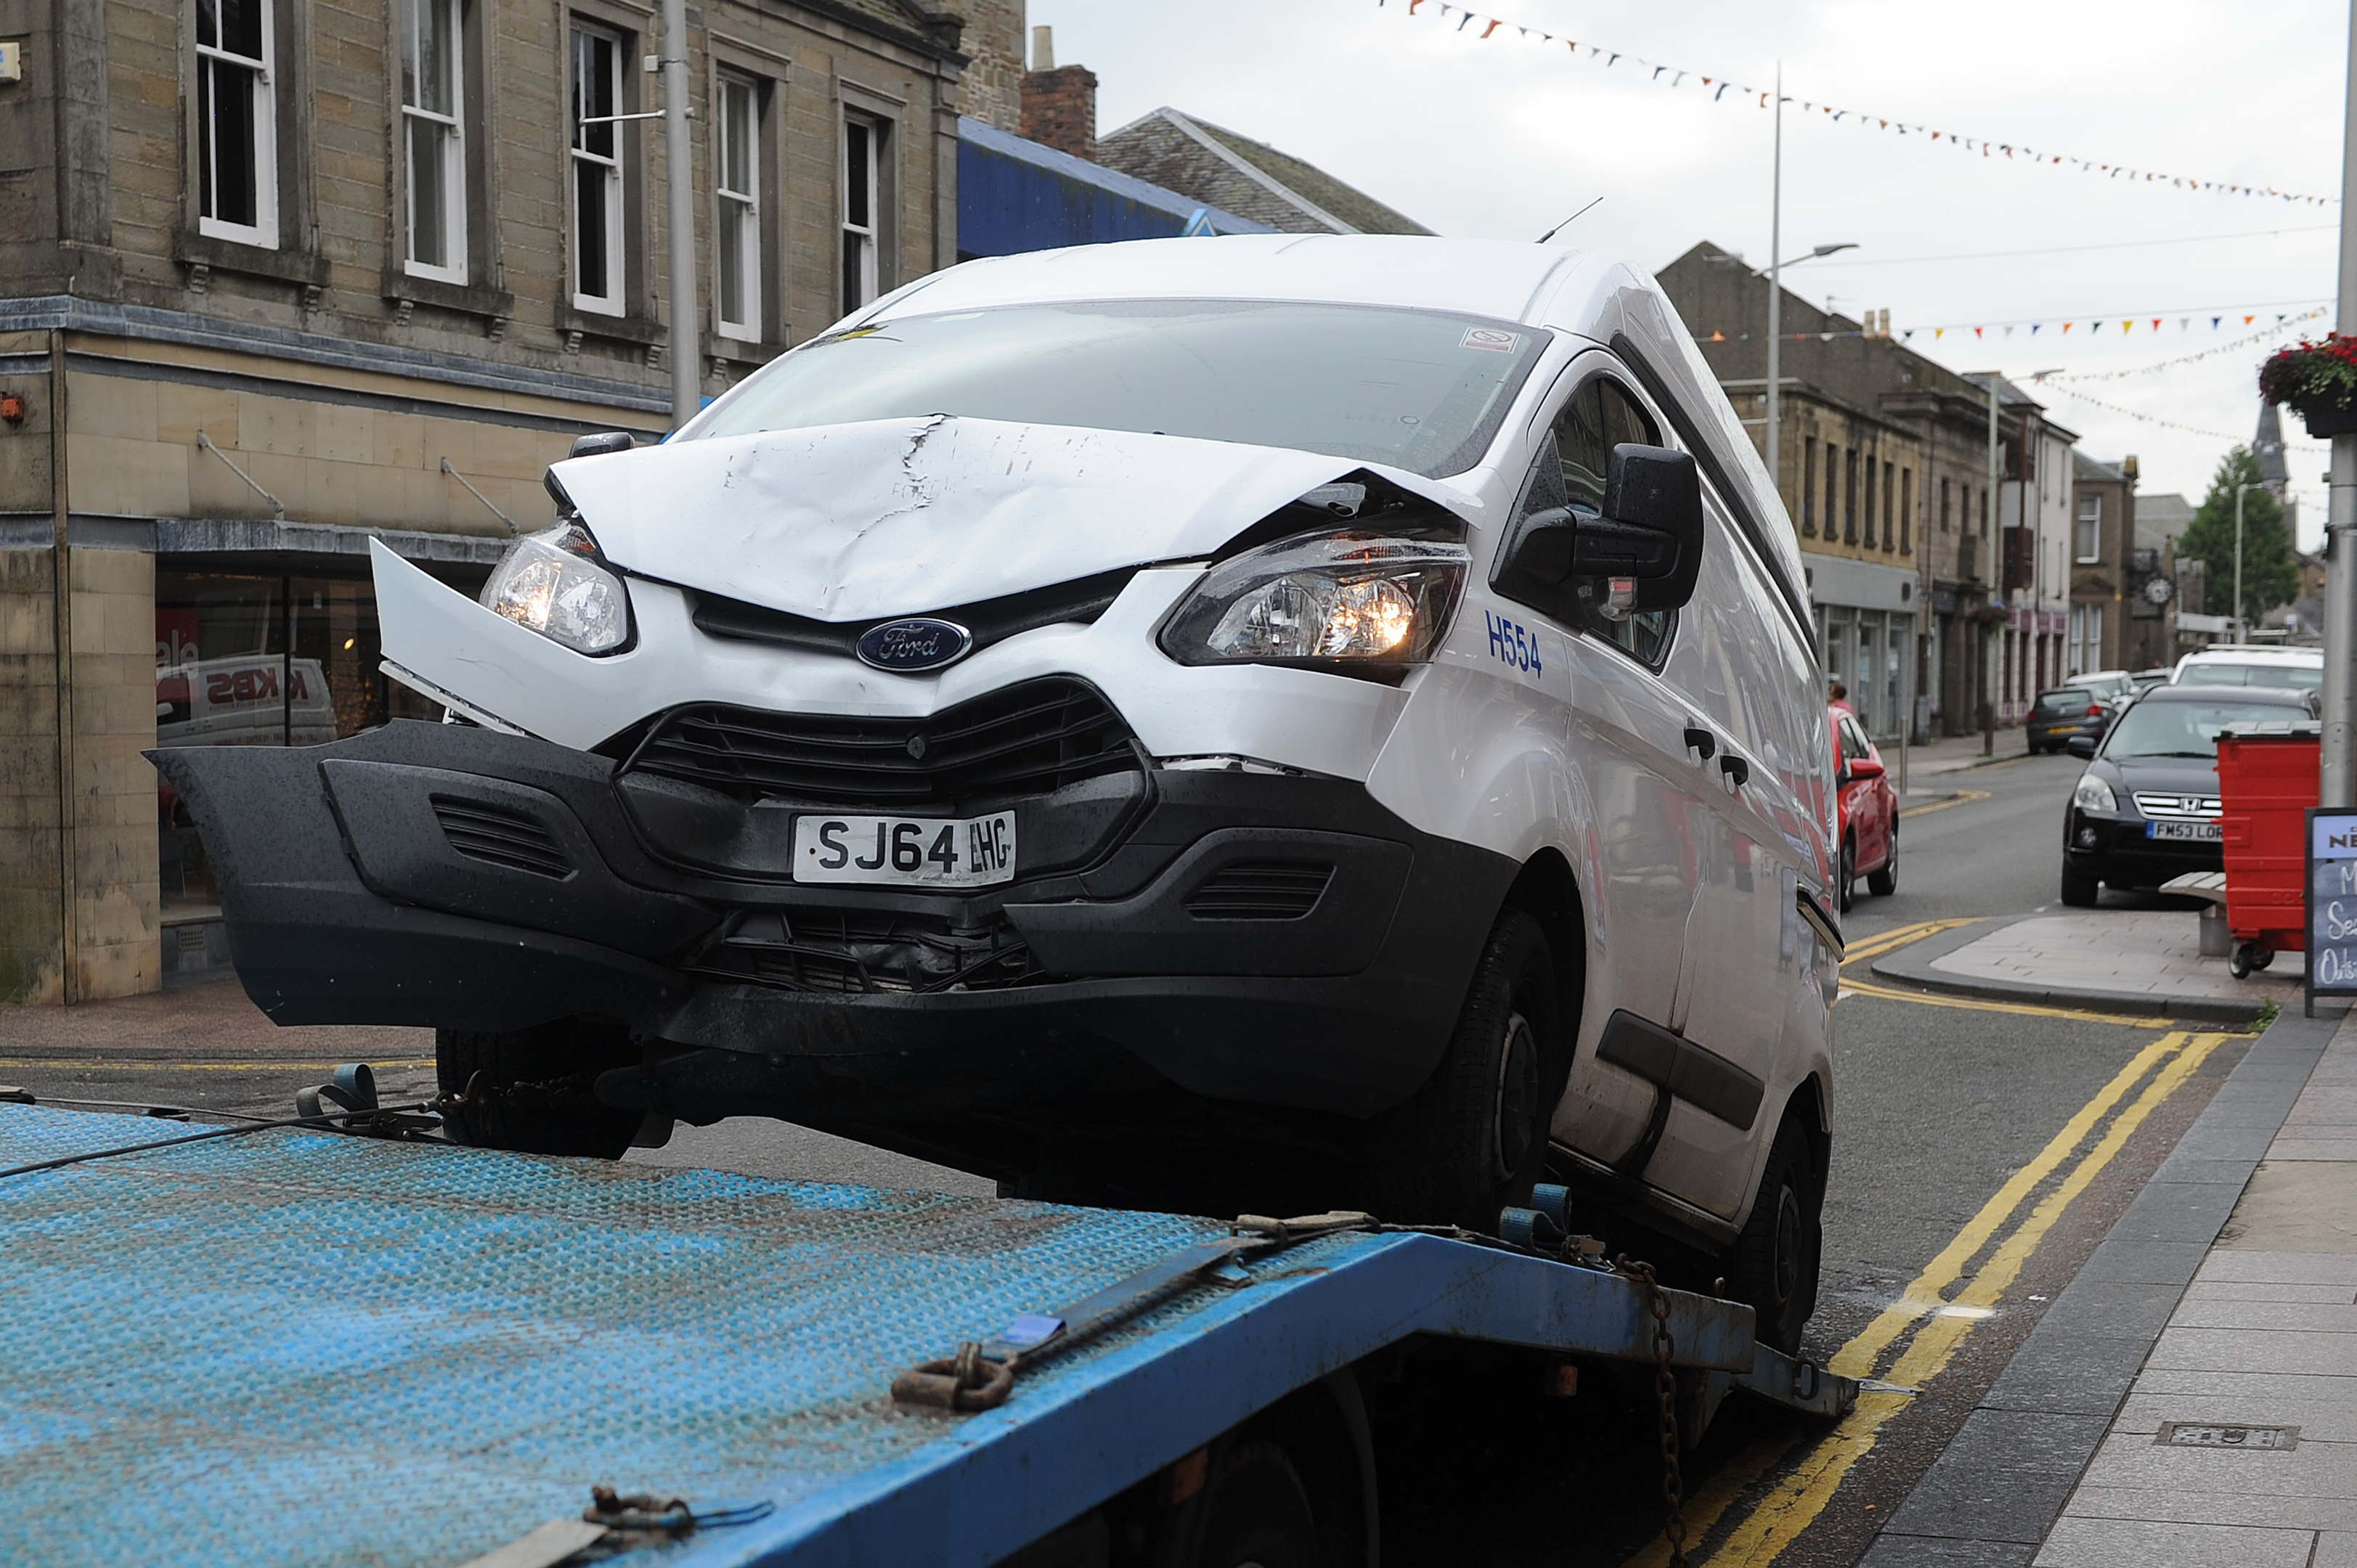 A Dundee City Council vehicle being towed away after a collision in Brought Ferry in August.